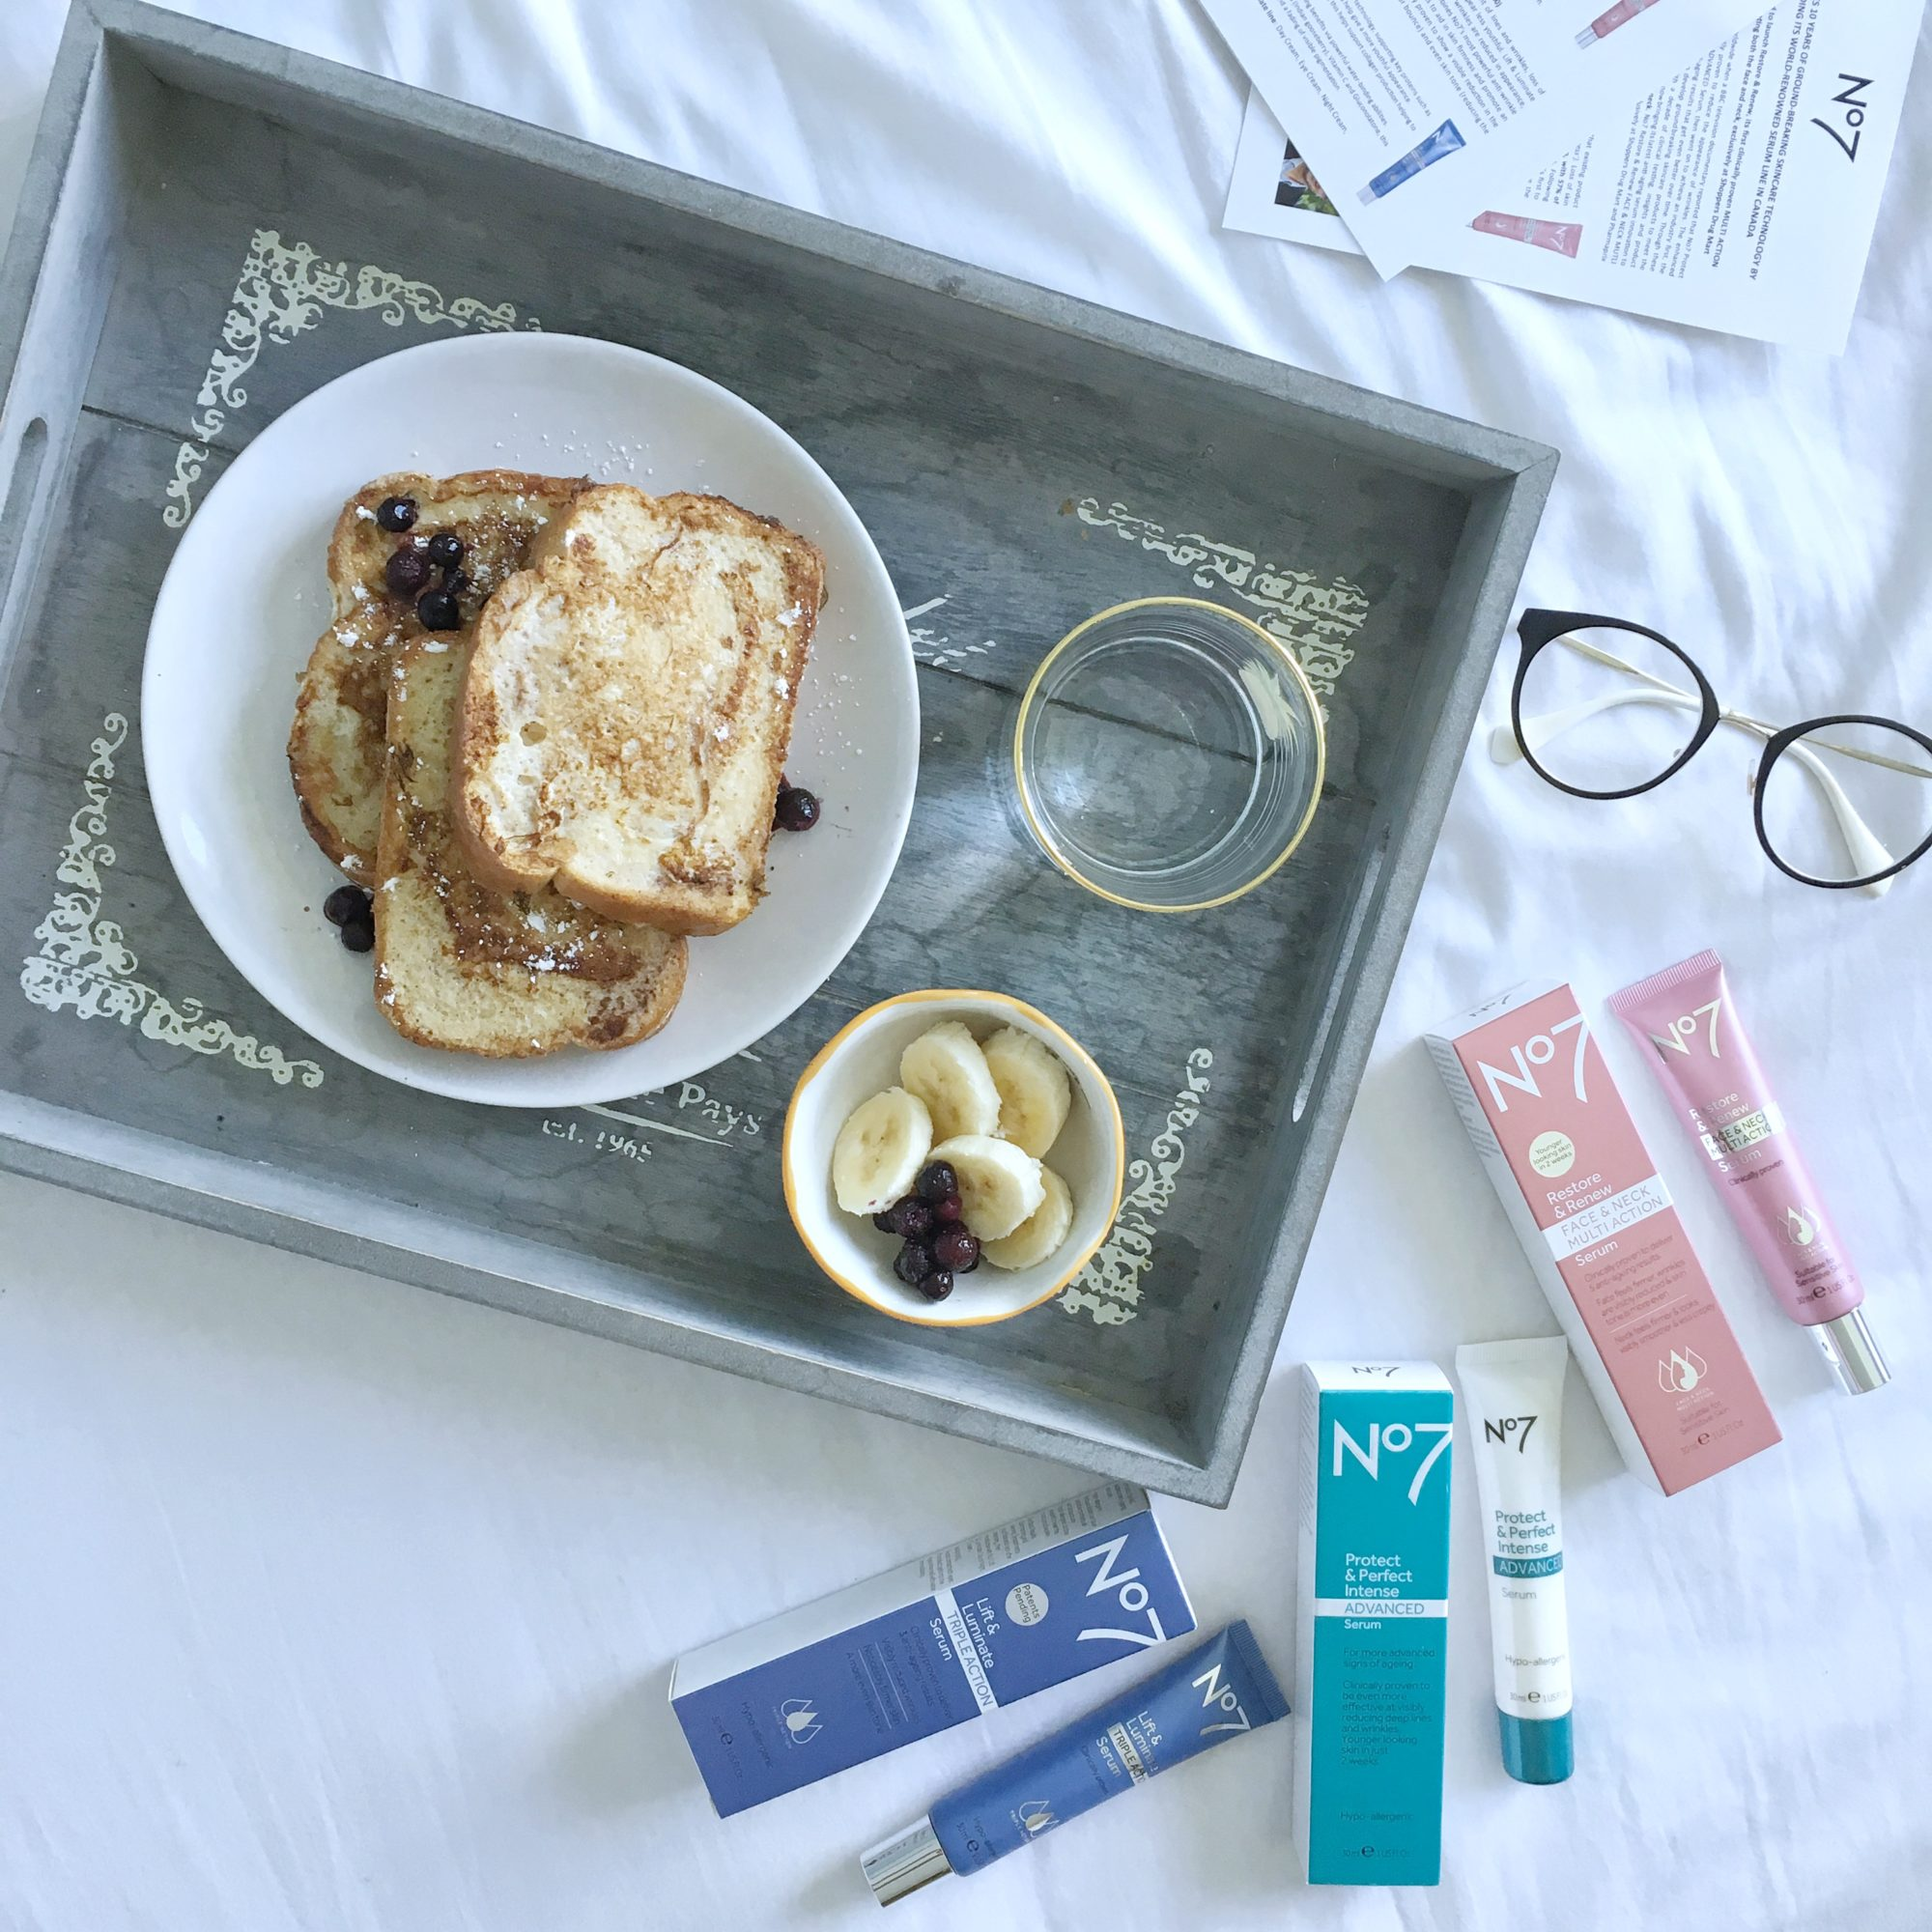 No7 Skincare: The Serum that was Always Sold Out [REVIEW]